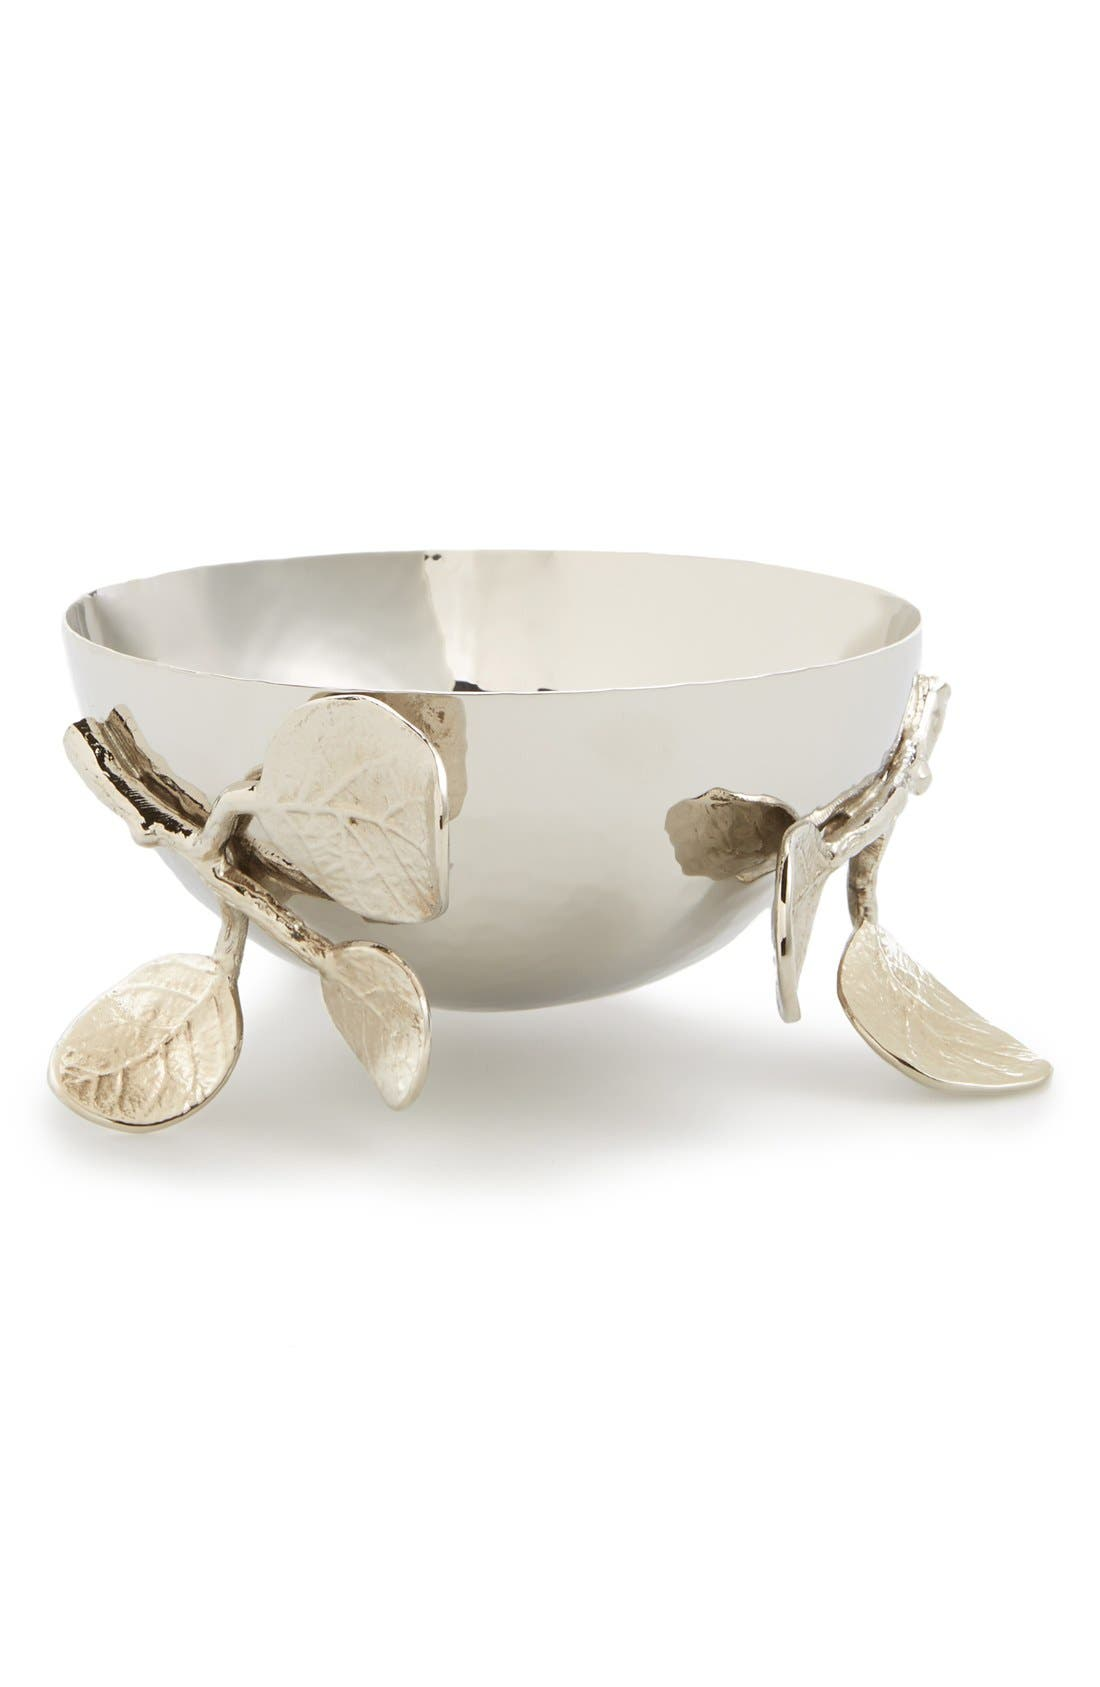 MICHAEL ARAM 'Botanical Leaf' Nut Dish